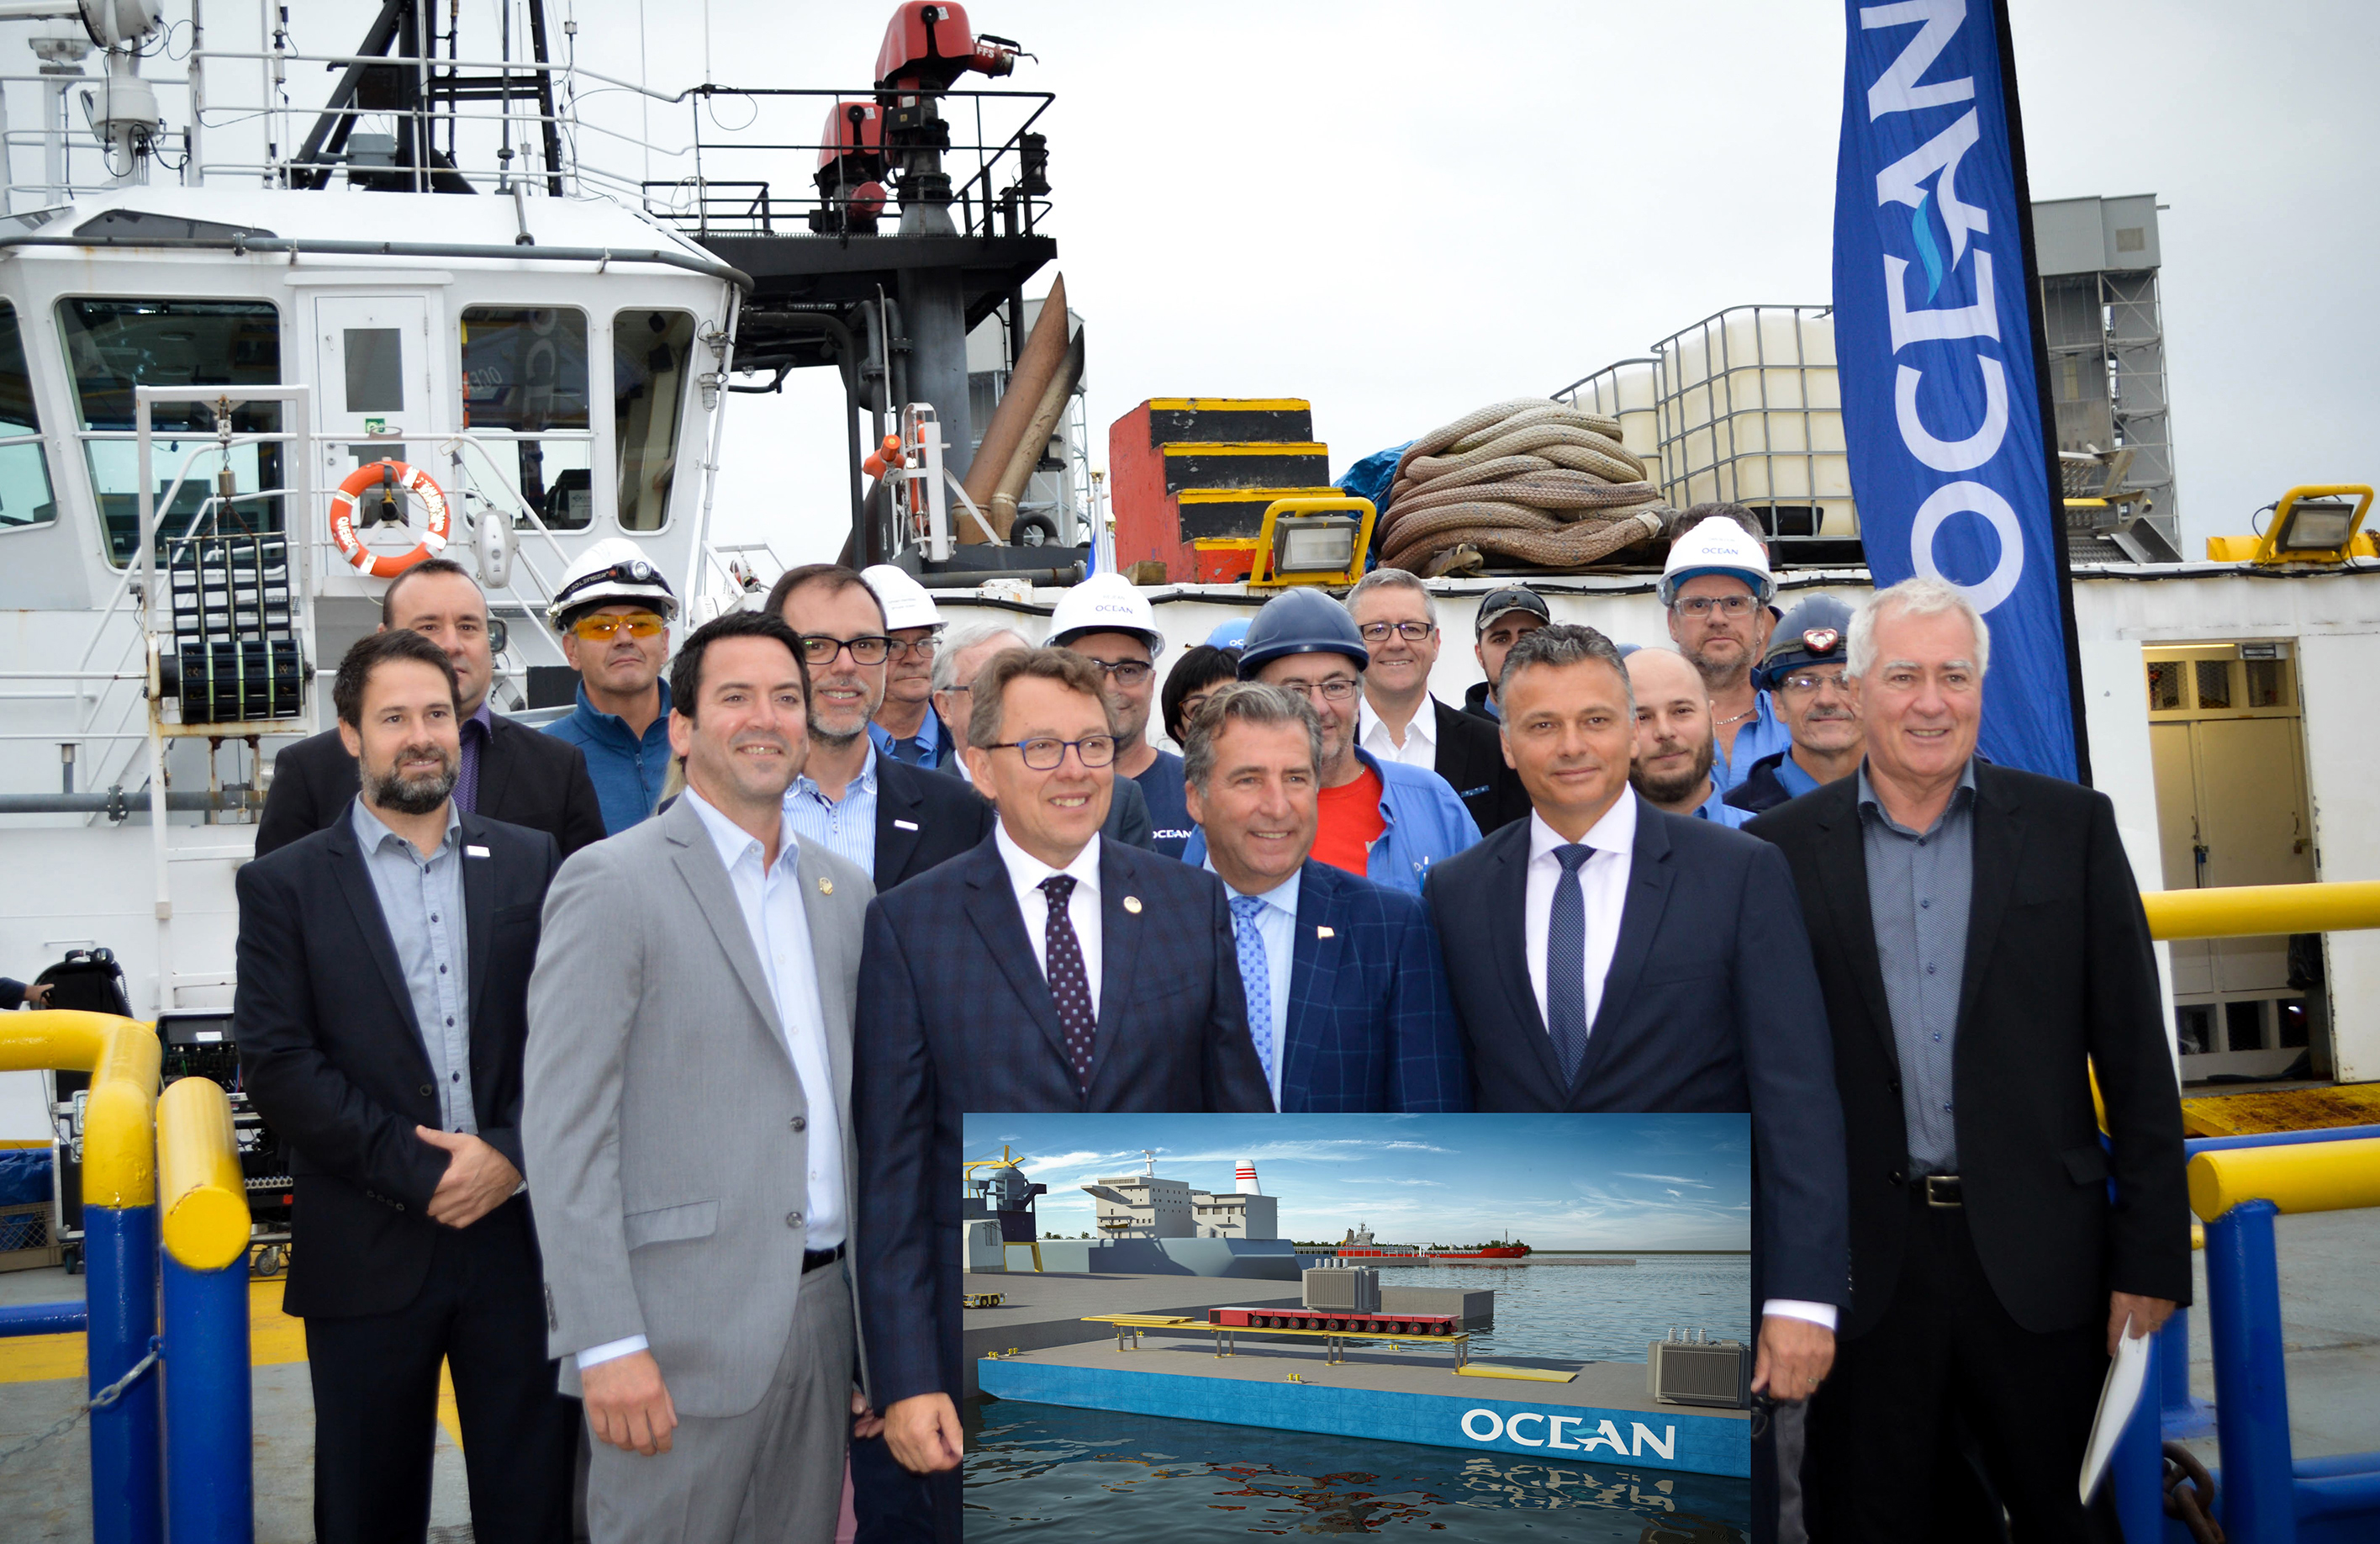 Ocean lifting barge - Ocean innovates with the announcement of a new equipment